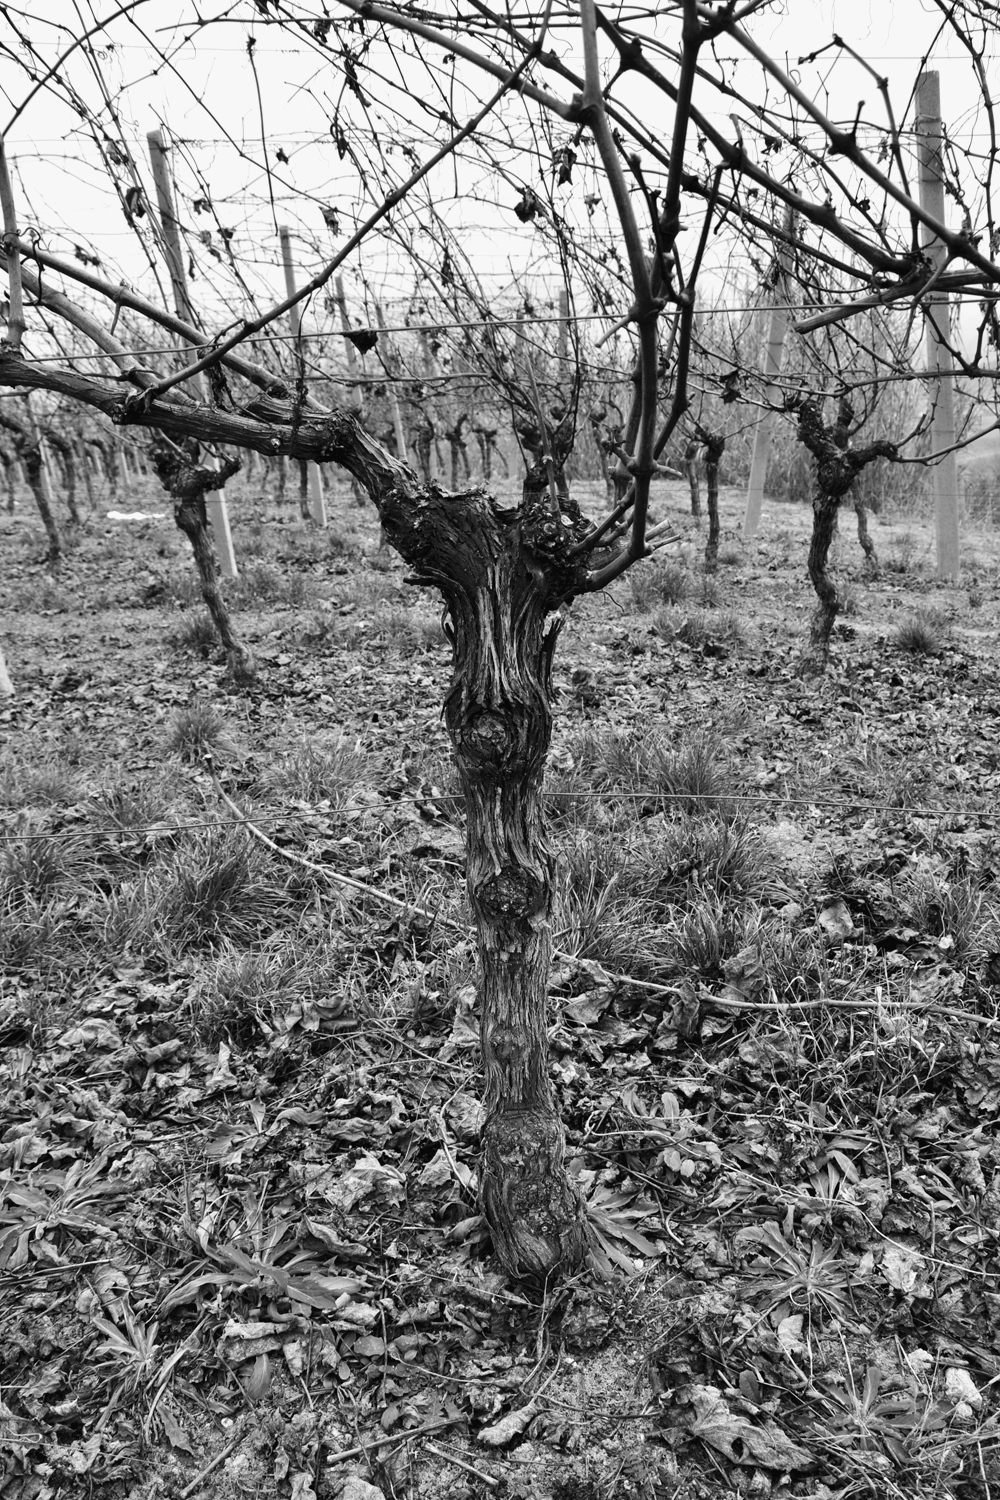 BARBERA: 26% - DOC Alto MonferratoTuff & marl layersSlight slopeNorth-East facingNatural TurfPruning style: Guyot25 years old6000kg/ha➝ GPS Coordinates